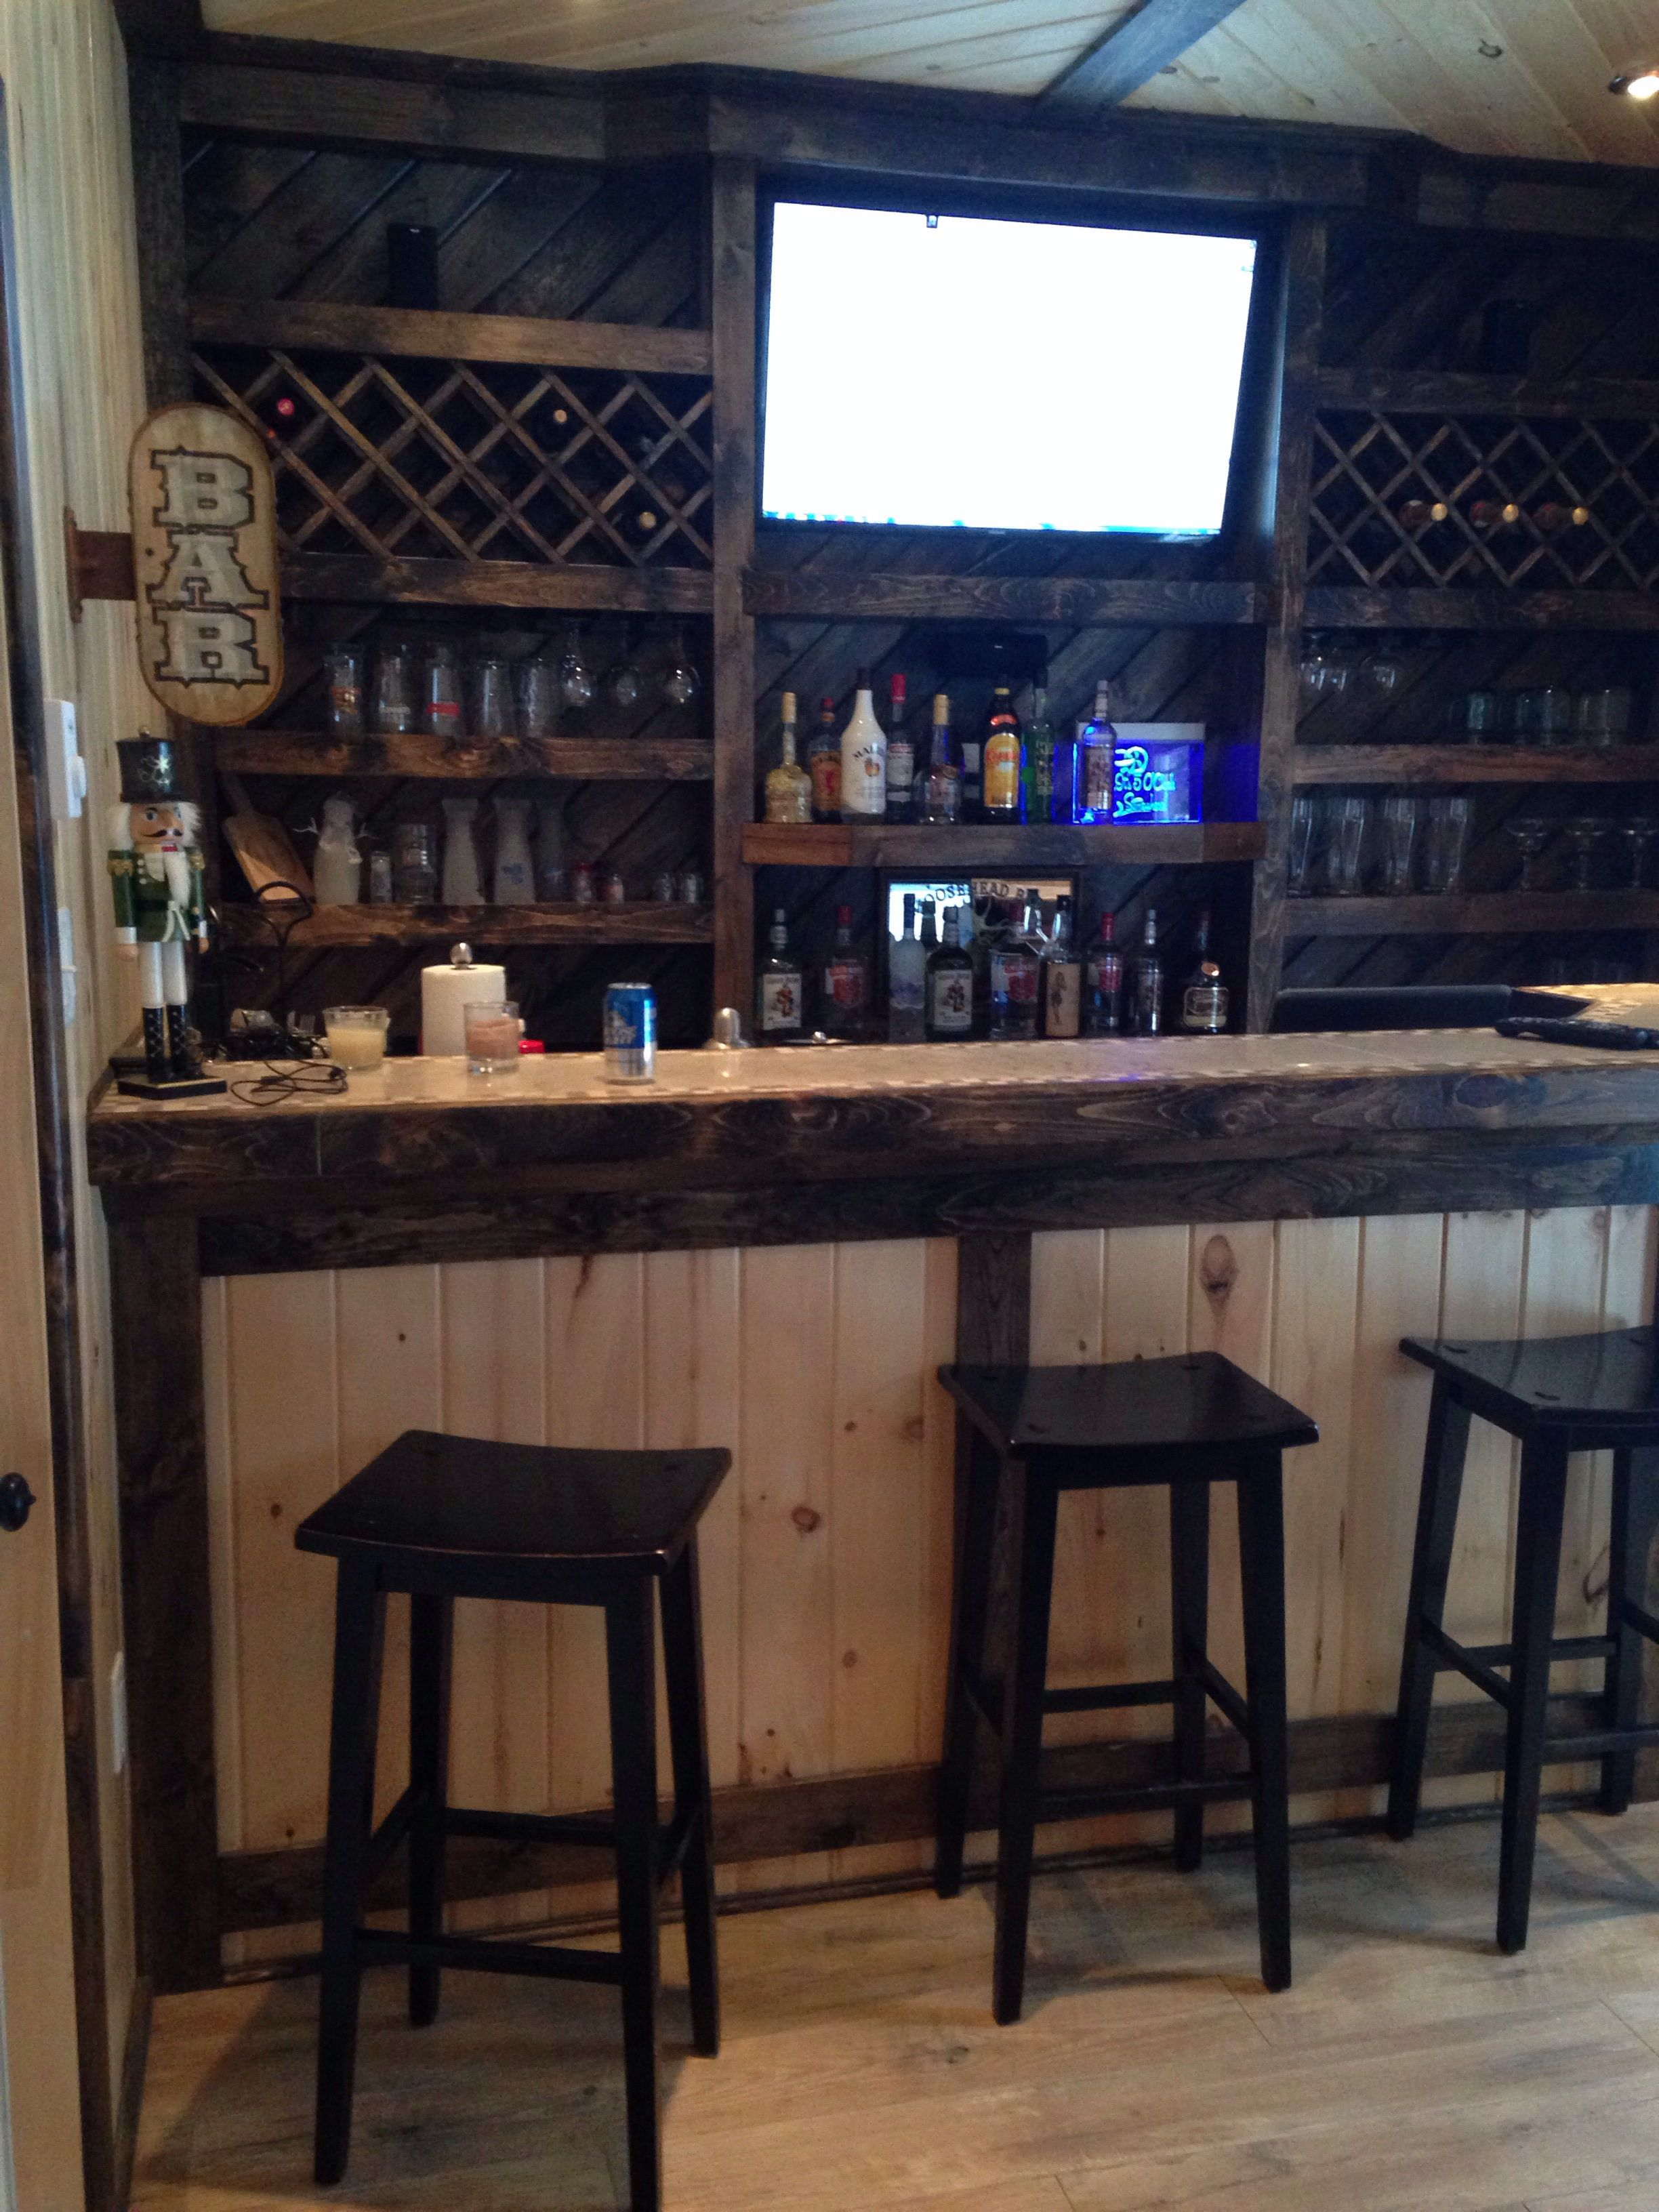 Man Cave Bar Layout : Garage bar idea for the hubby s man cave like this but